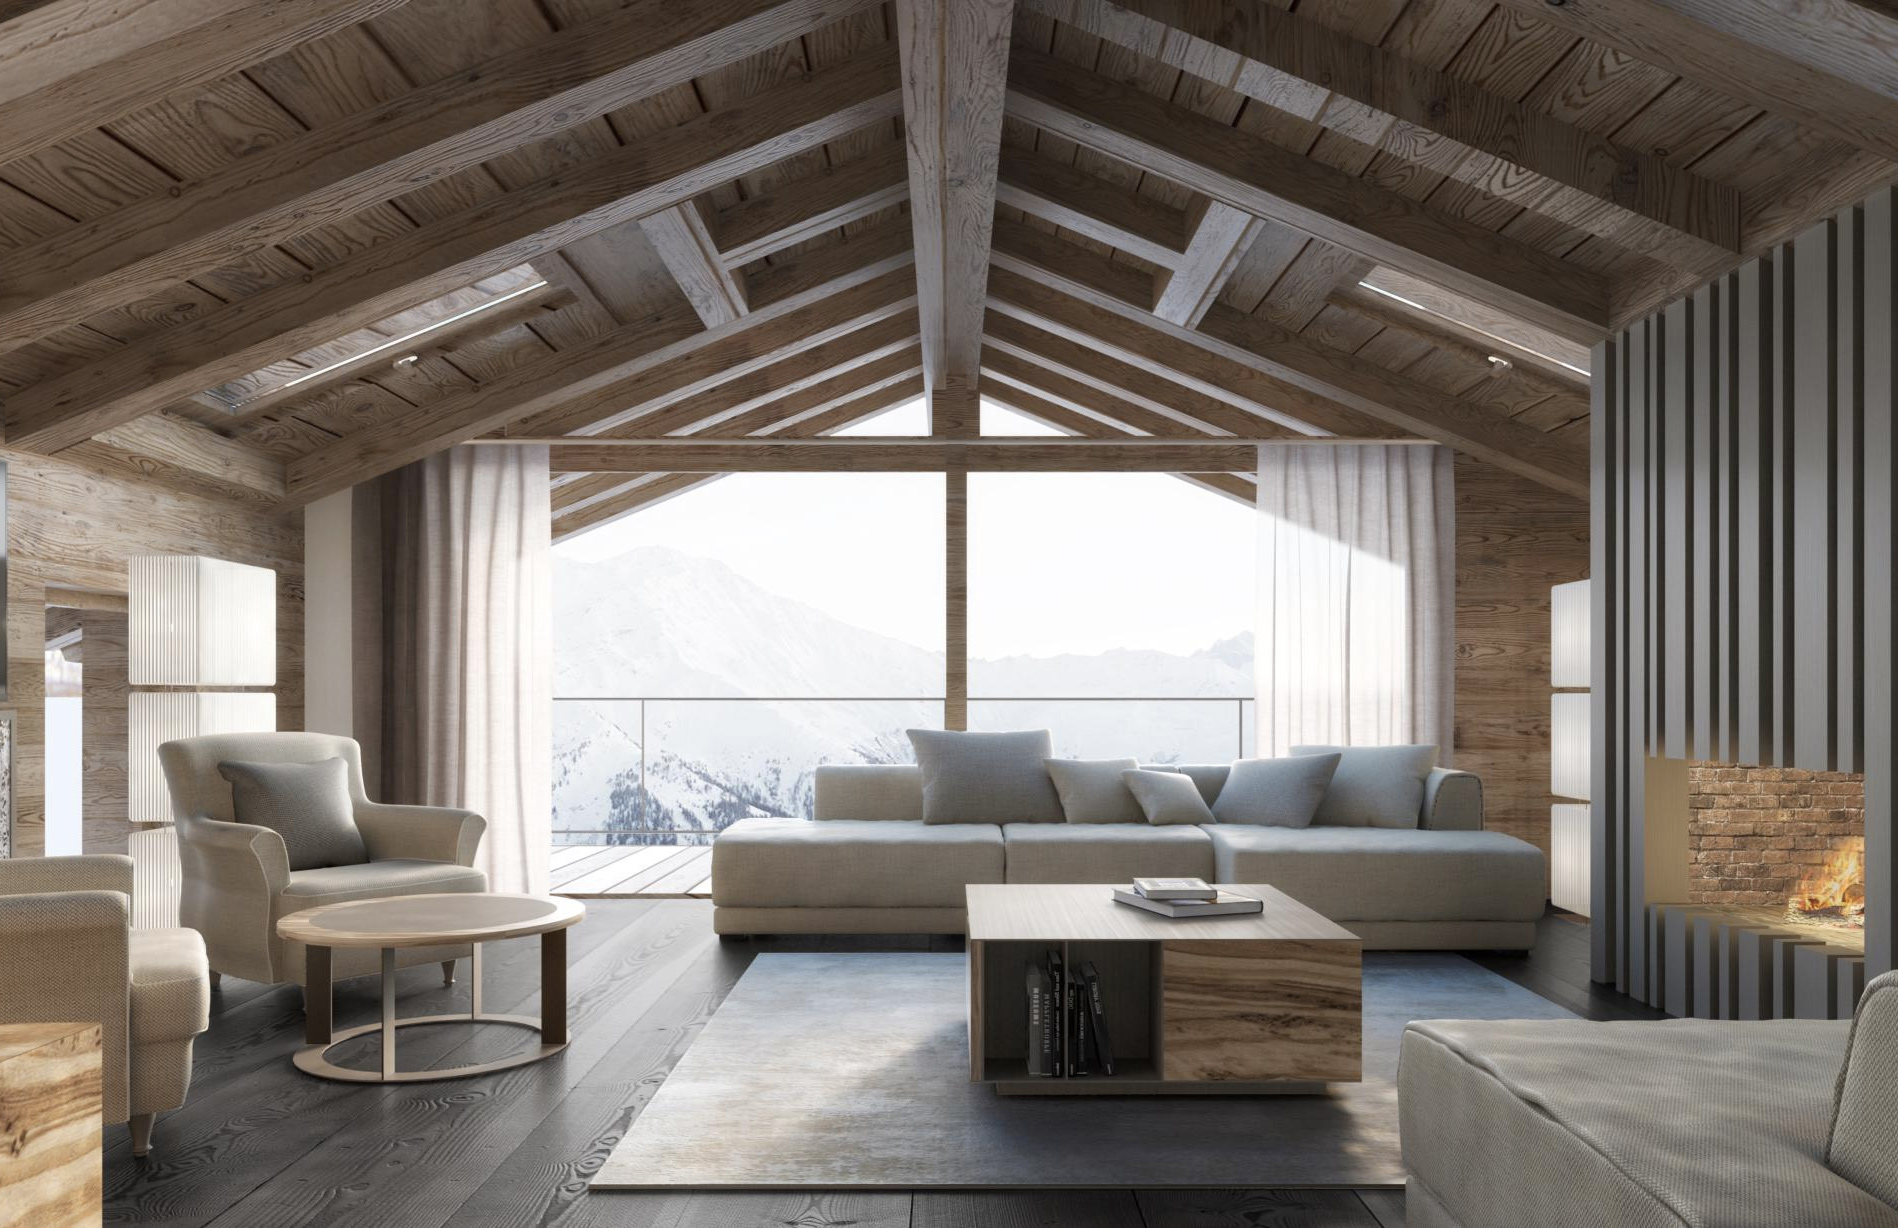 Ski Chalet Interior Design 5 striking ski chalets for sale in europe right now - the spaces